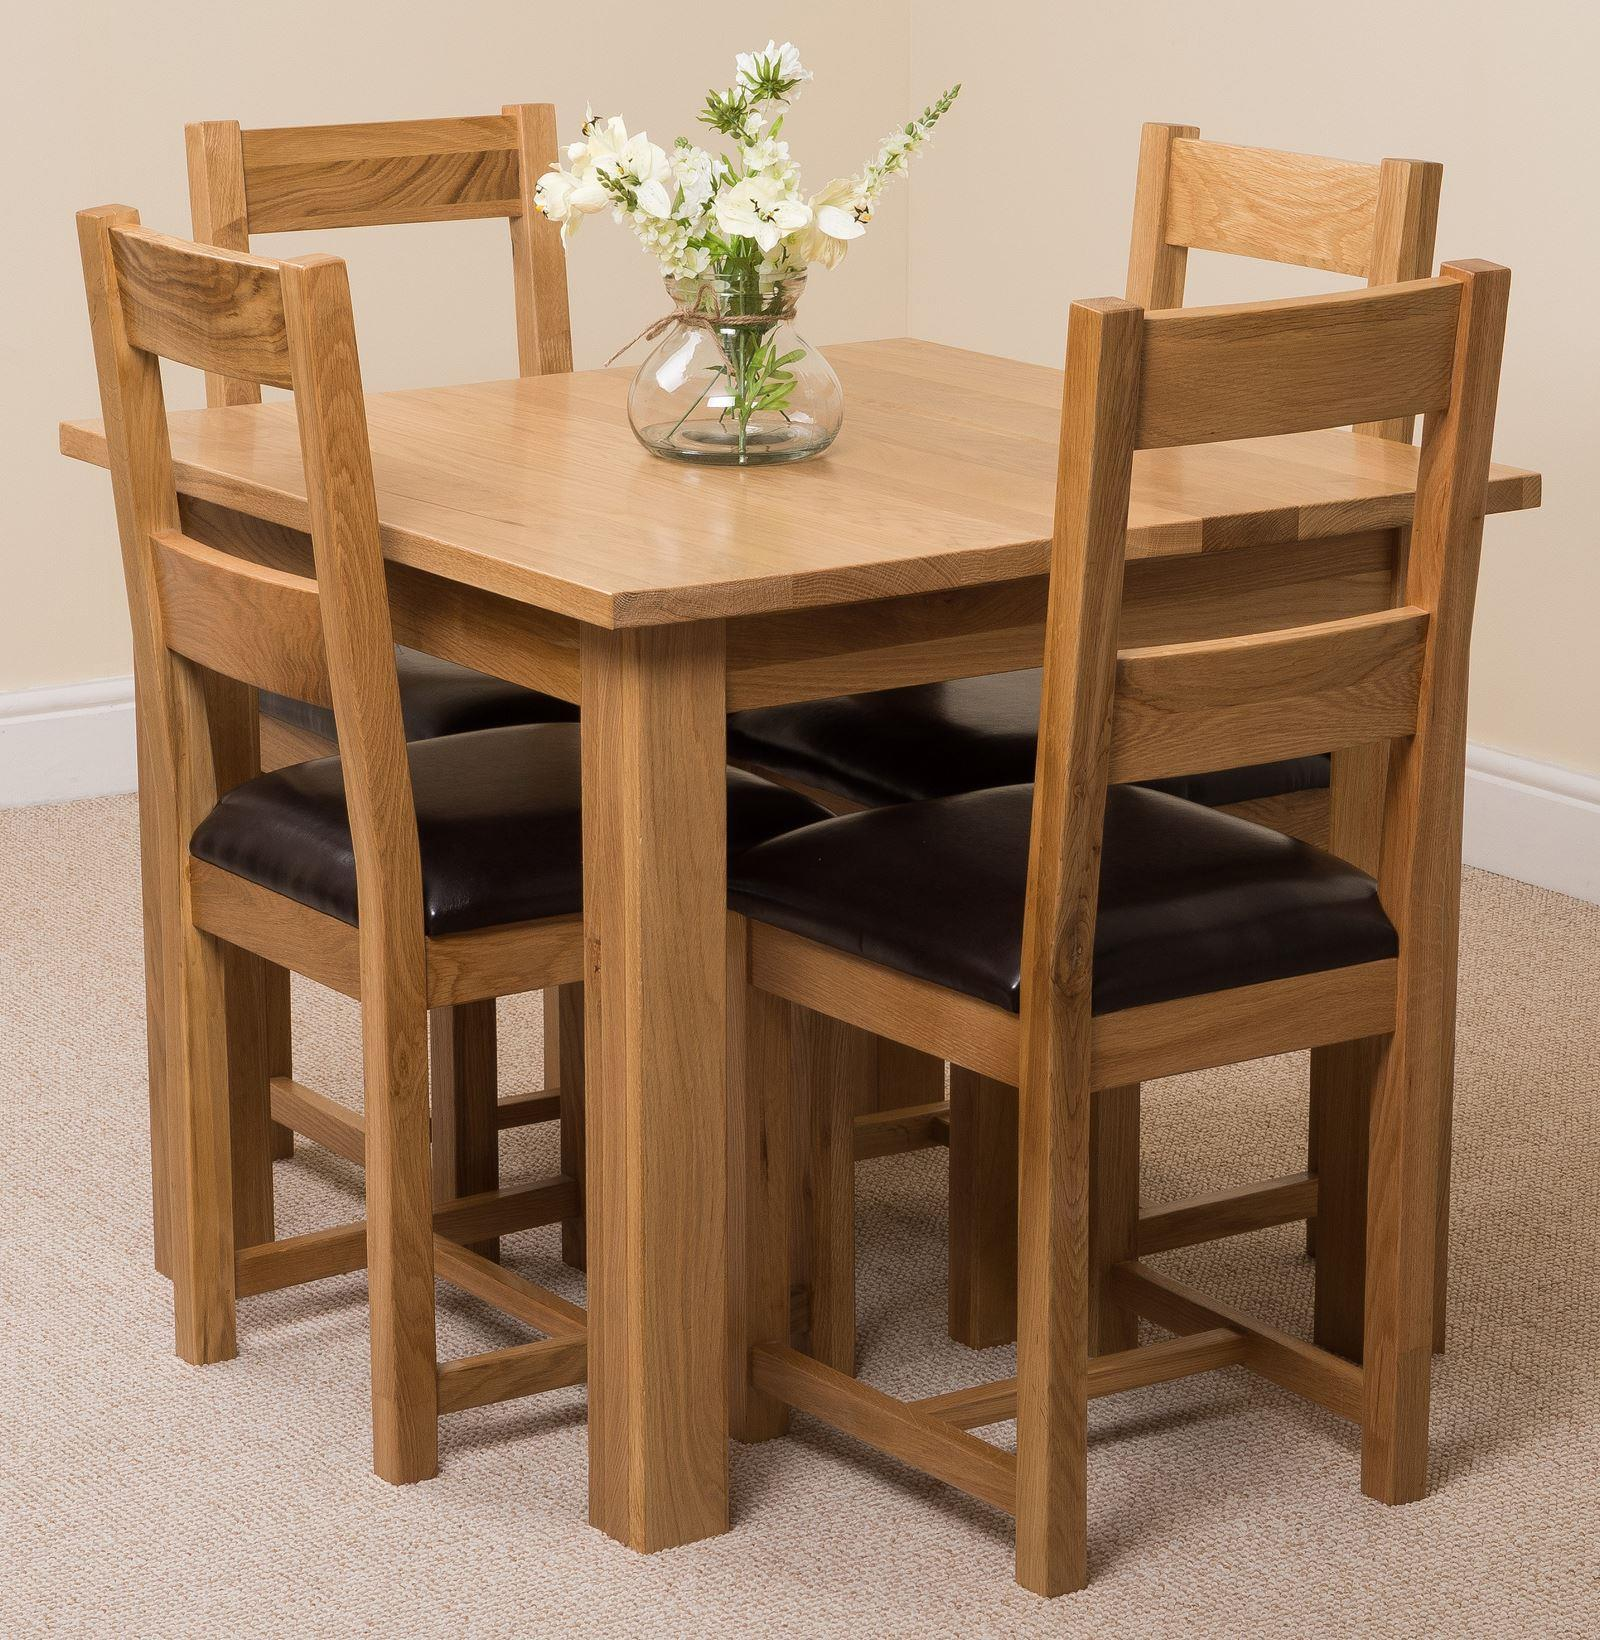 Oslo Solid Oak Dining Table & 4 Lincoln Chairs